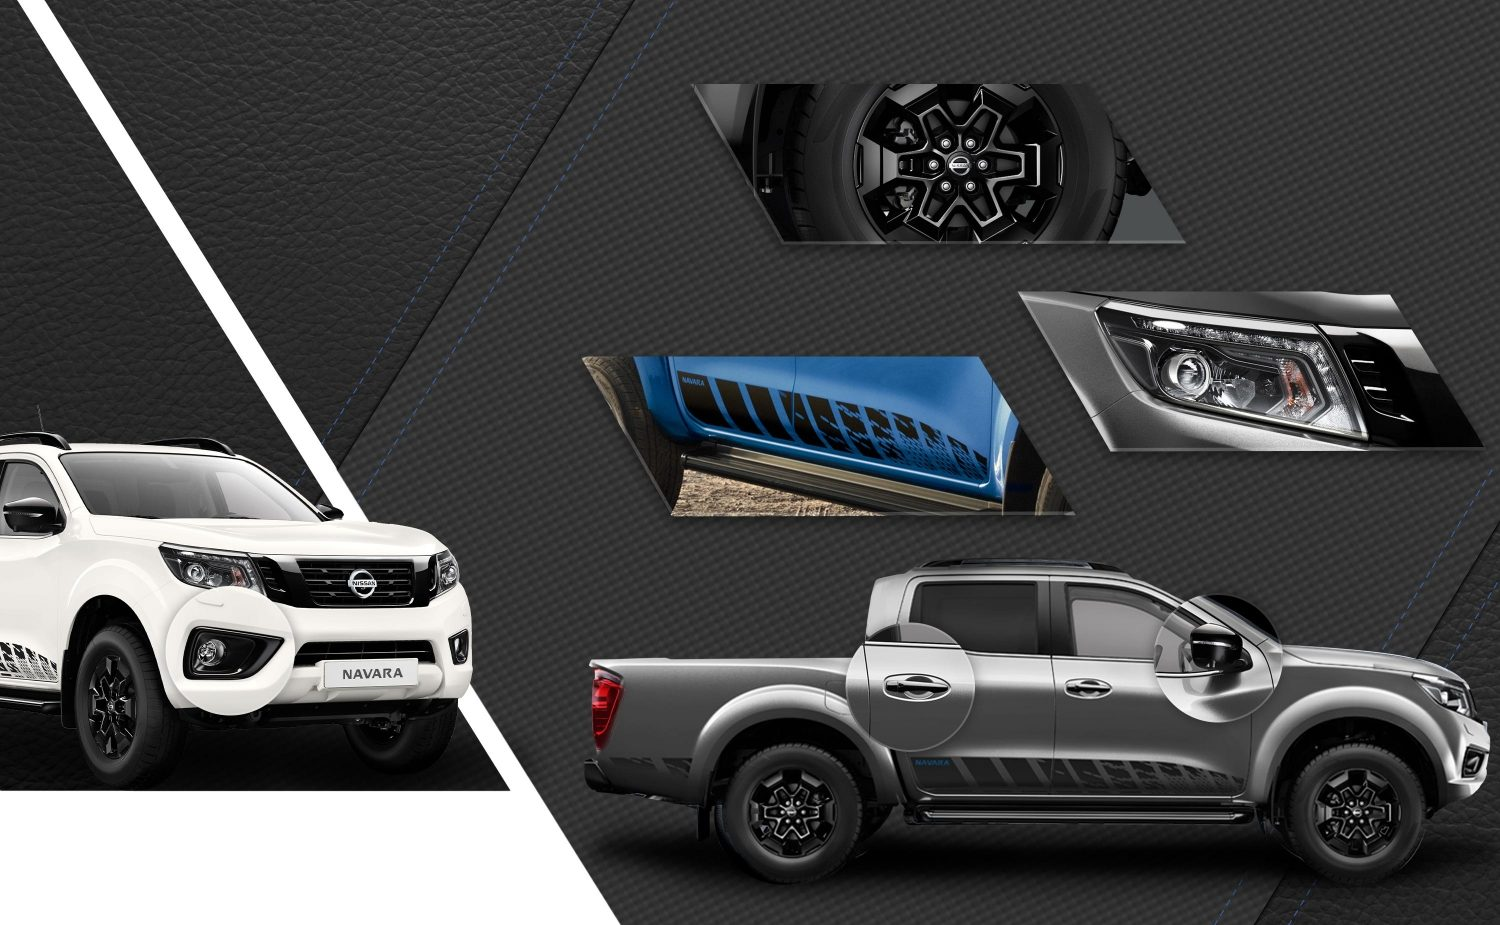 NISSAN NAVARA N-GUARD Collage mit allen Außendesign-Stylingelementen